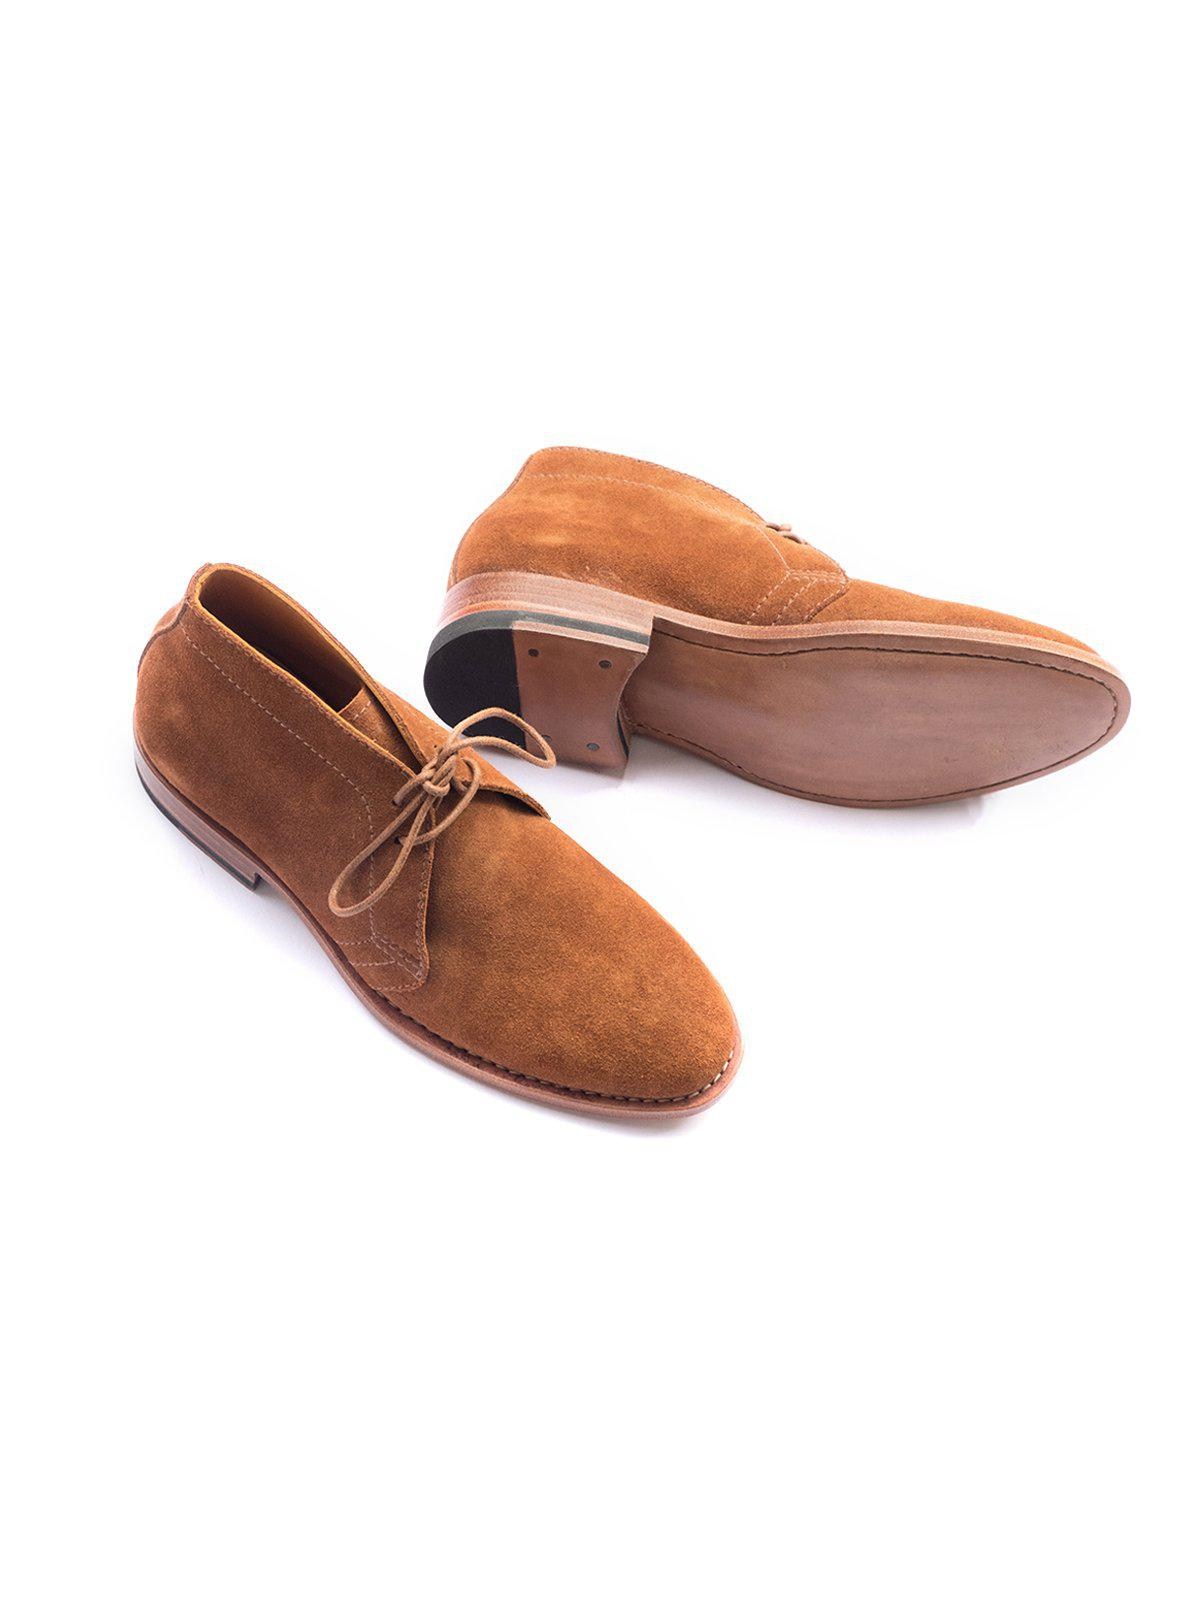 Santalum Casual Rover Chukka Brown Suede Leather - MORE by Morello Indonesia